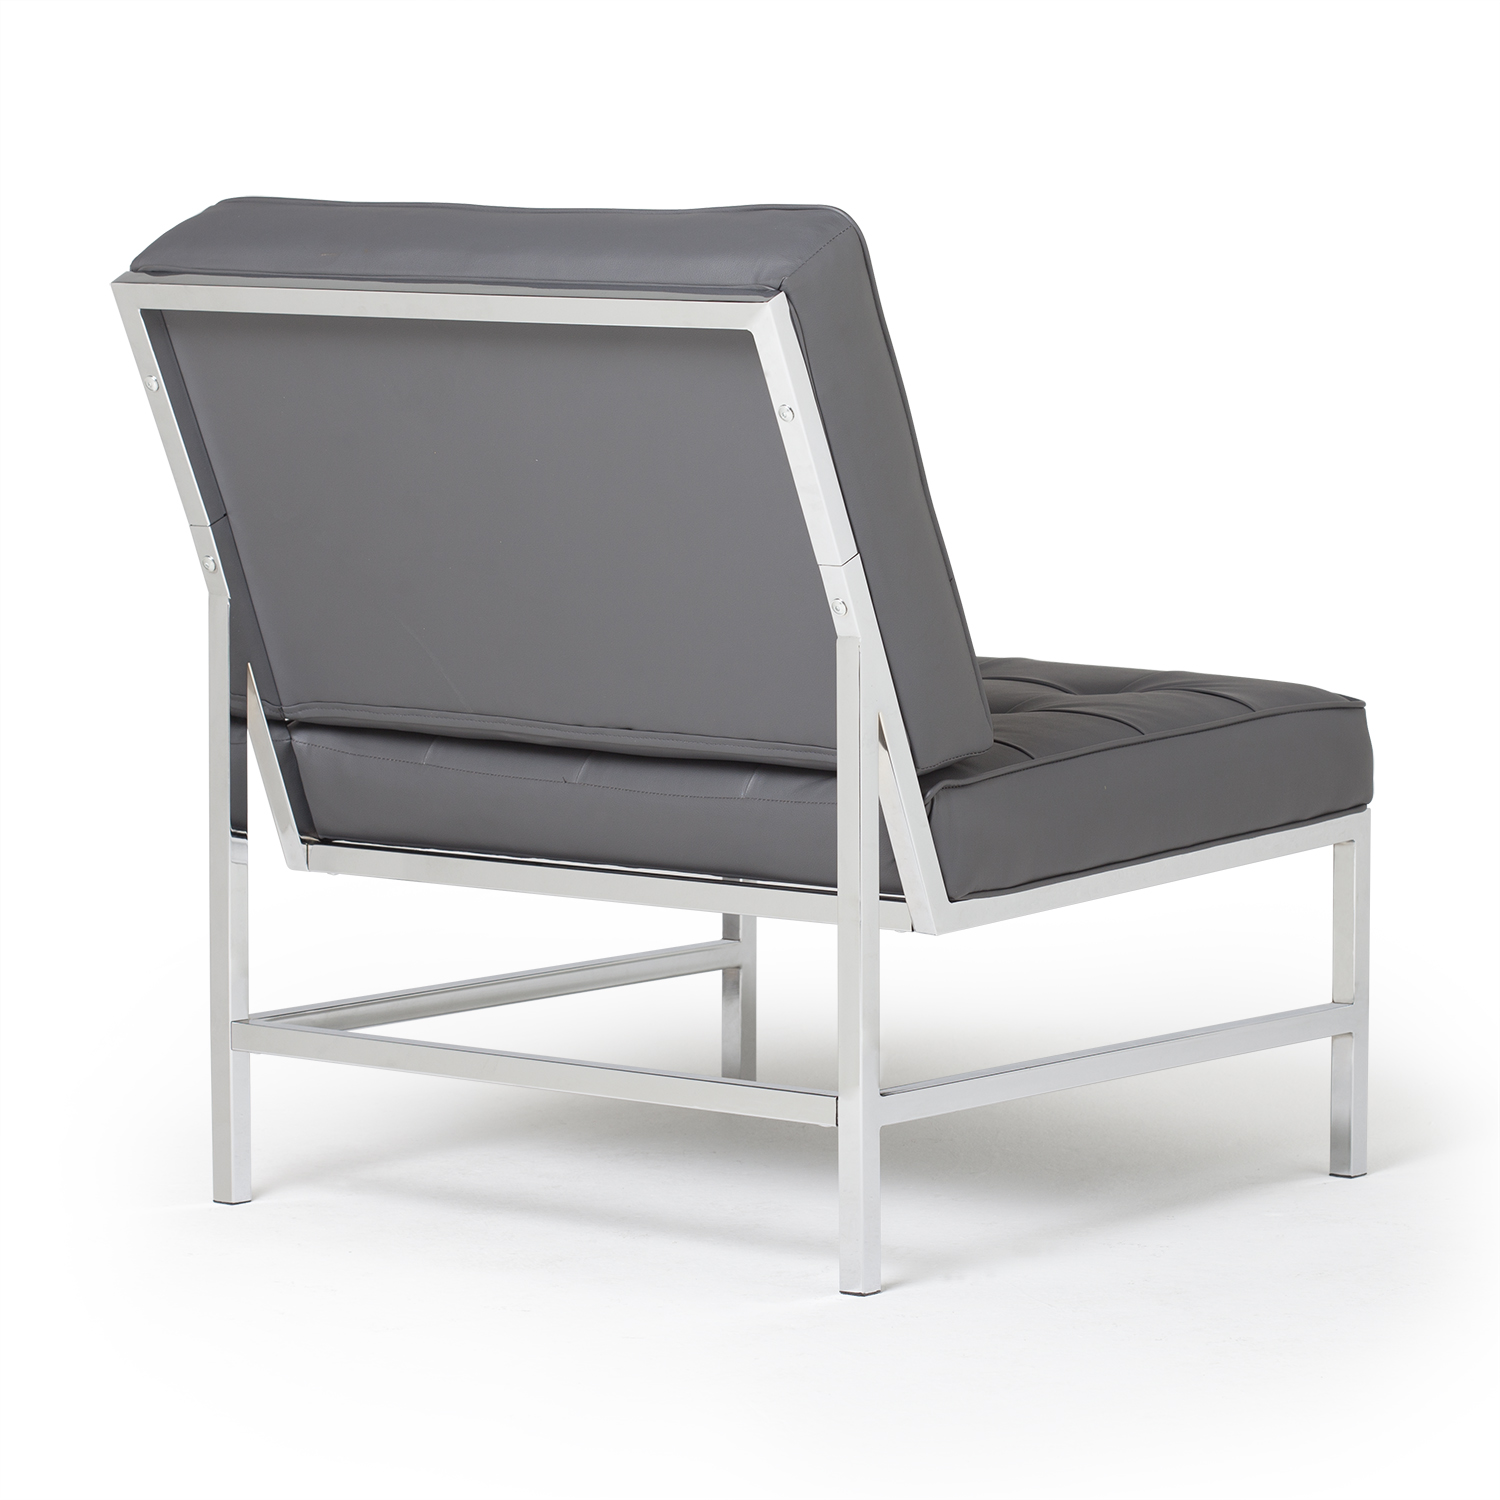 Ashlar Bonded Leather Accent Chair In Smoke Gray Chrome